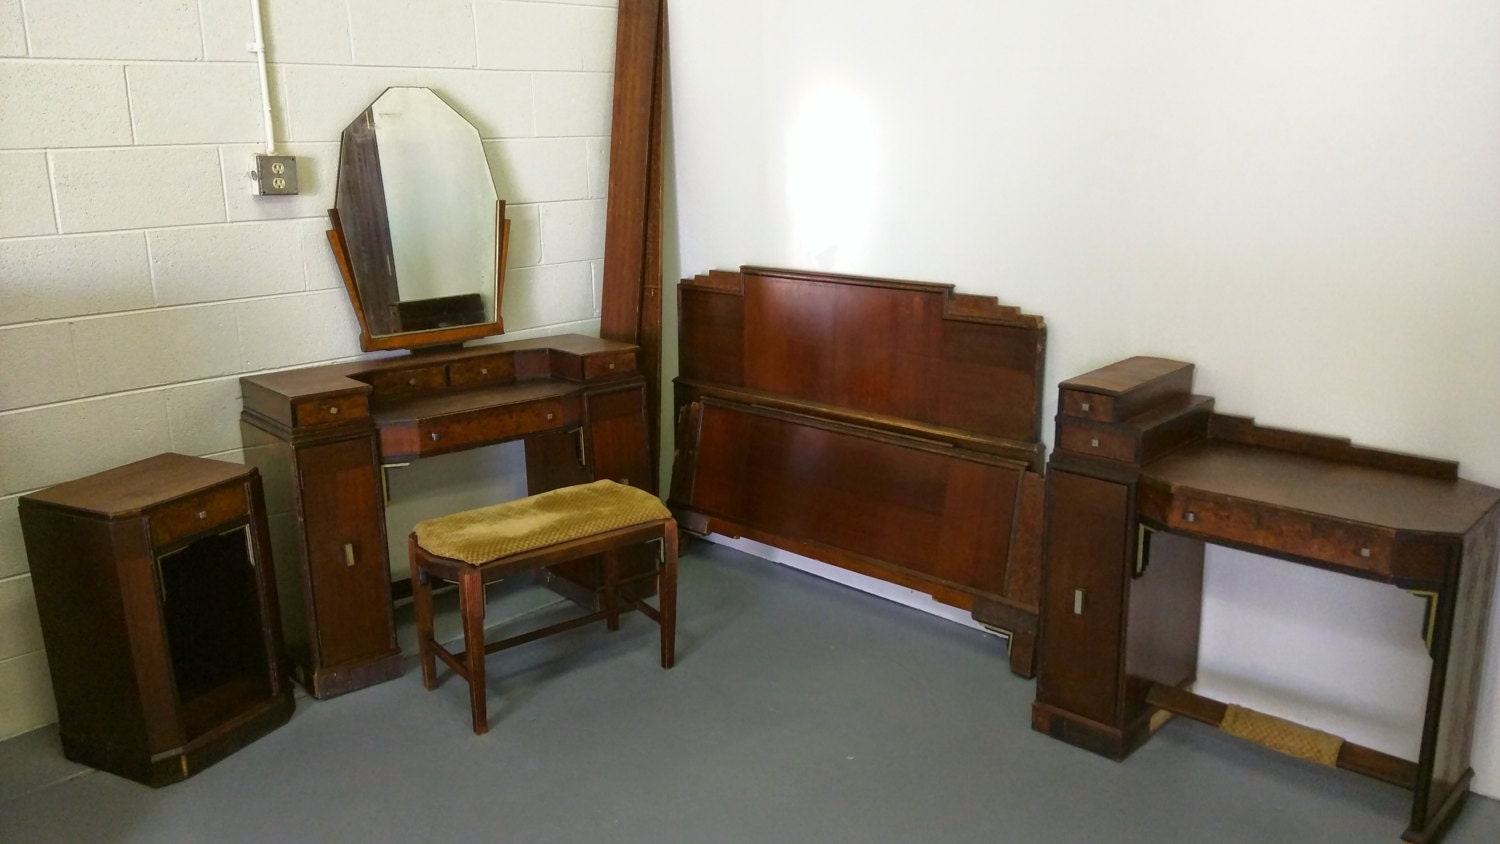 Https Www Etsy Com Listing 233369730 Vintage 1920s Art Deco Bedroom Set